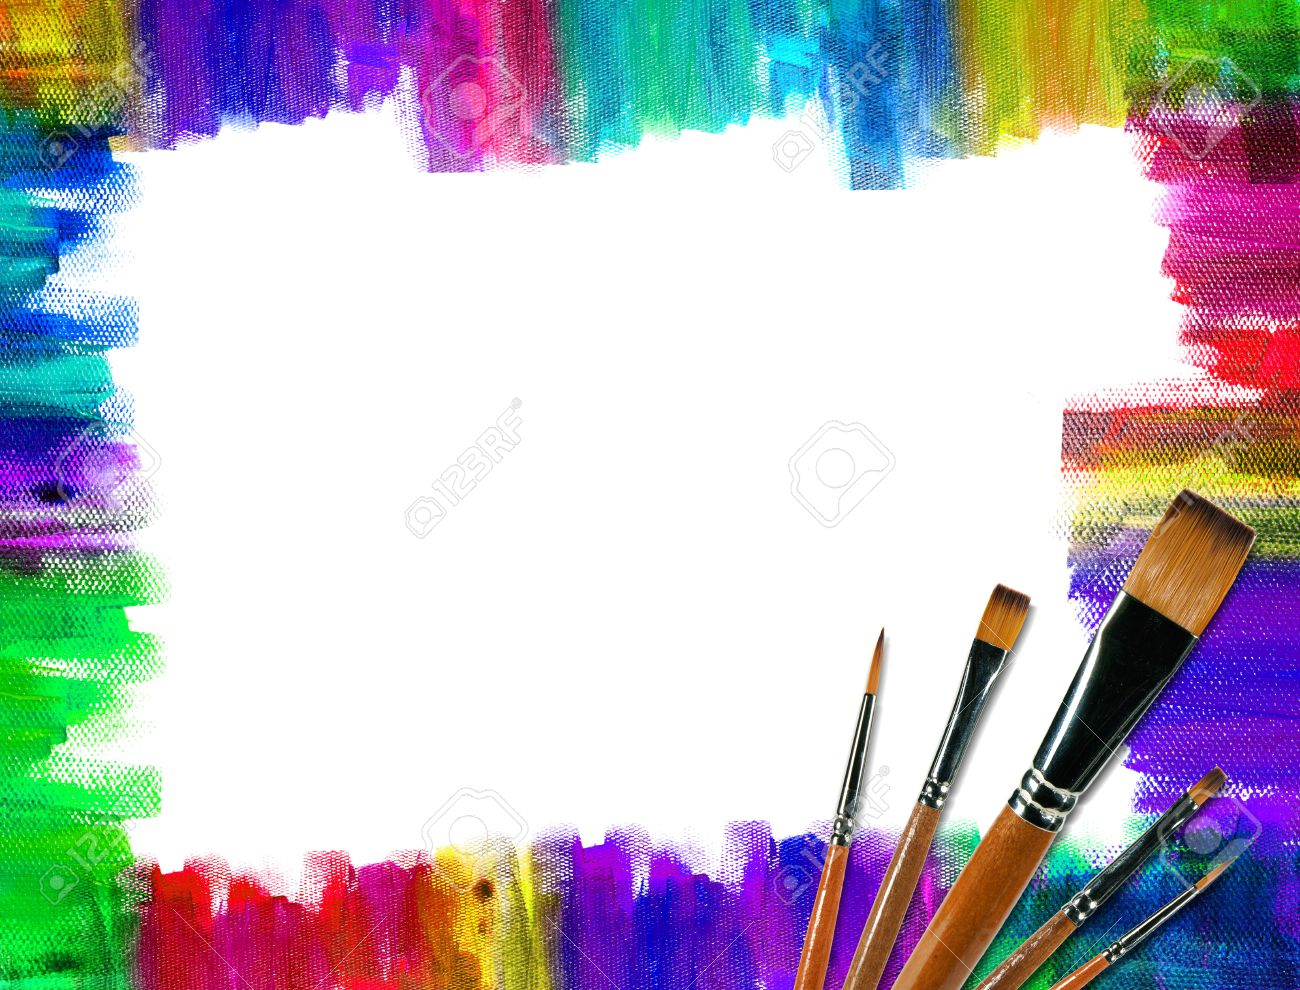 a color brush frame on canvas stock photo 9209986